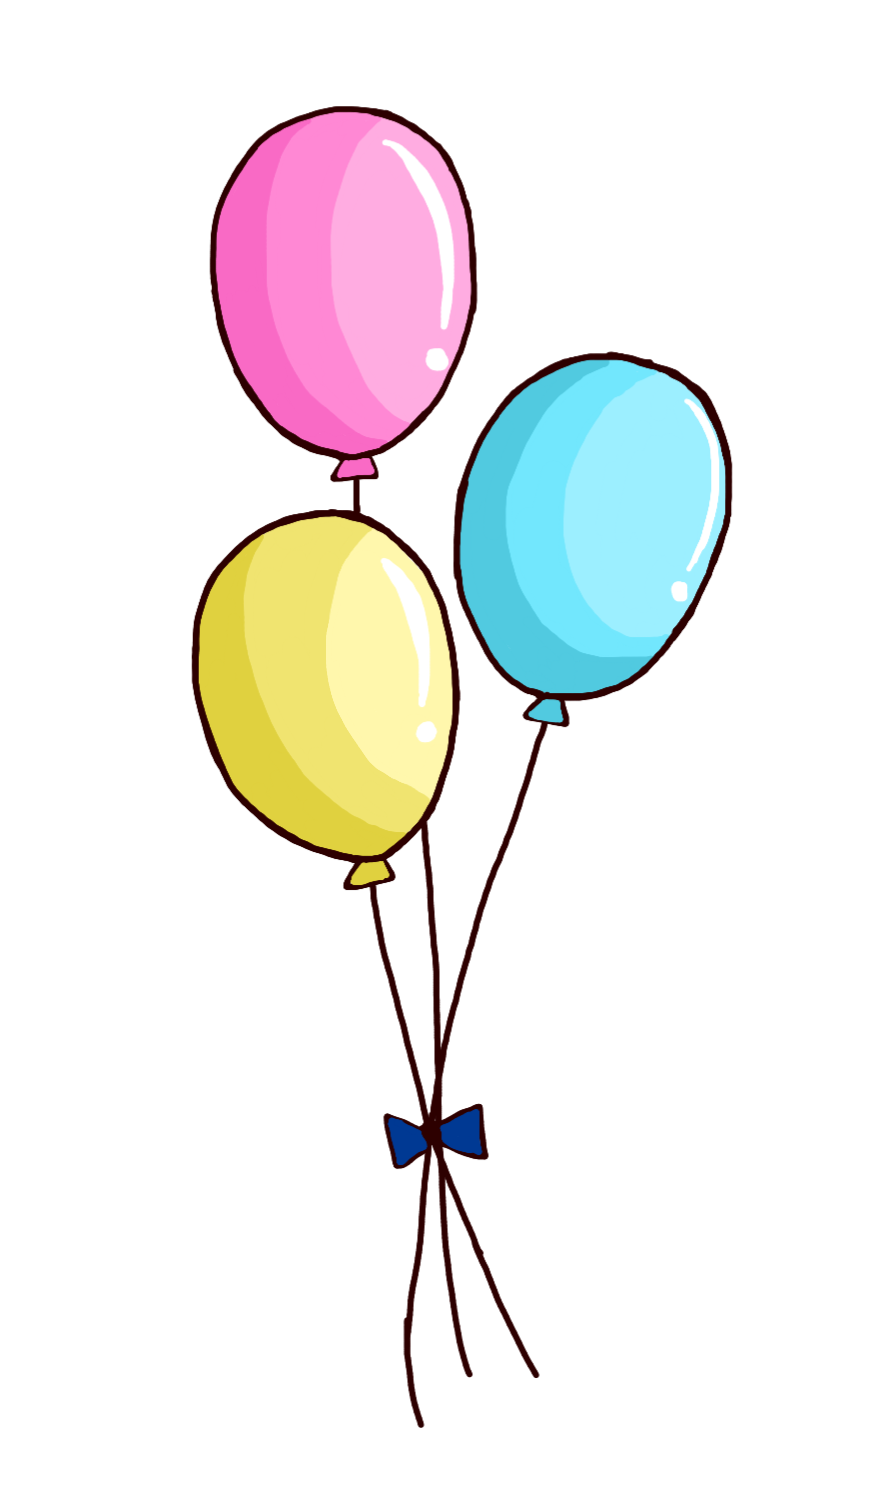 #balloons #ftestickers